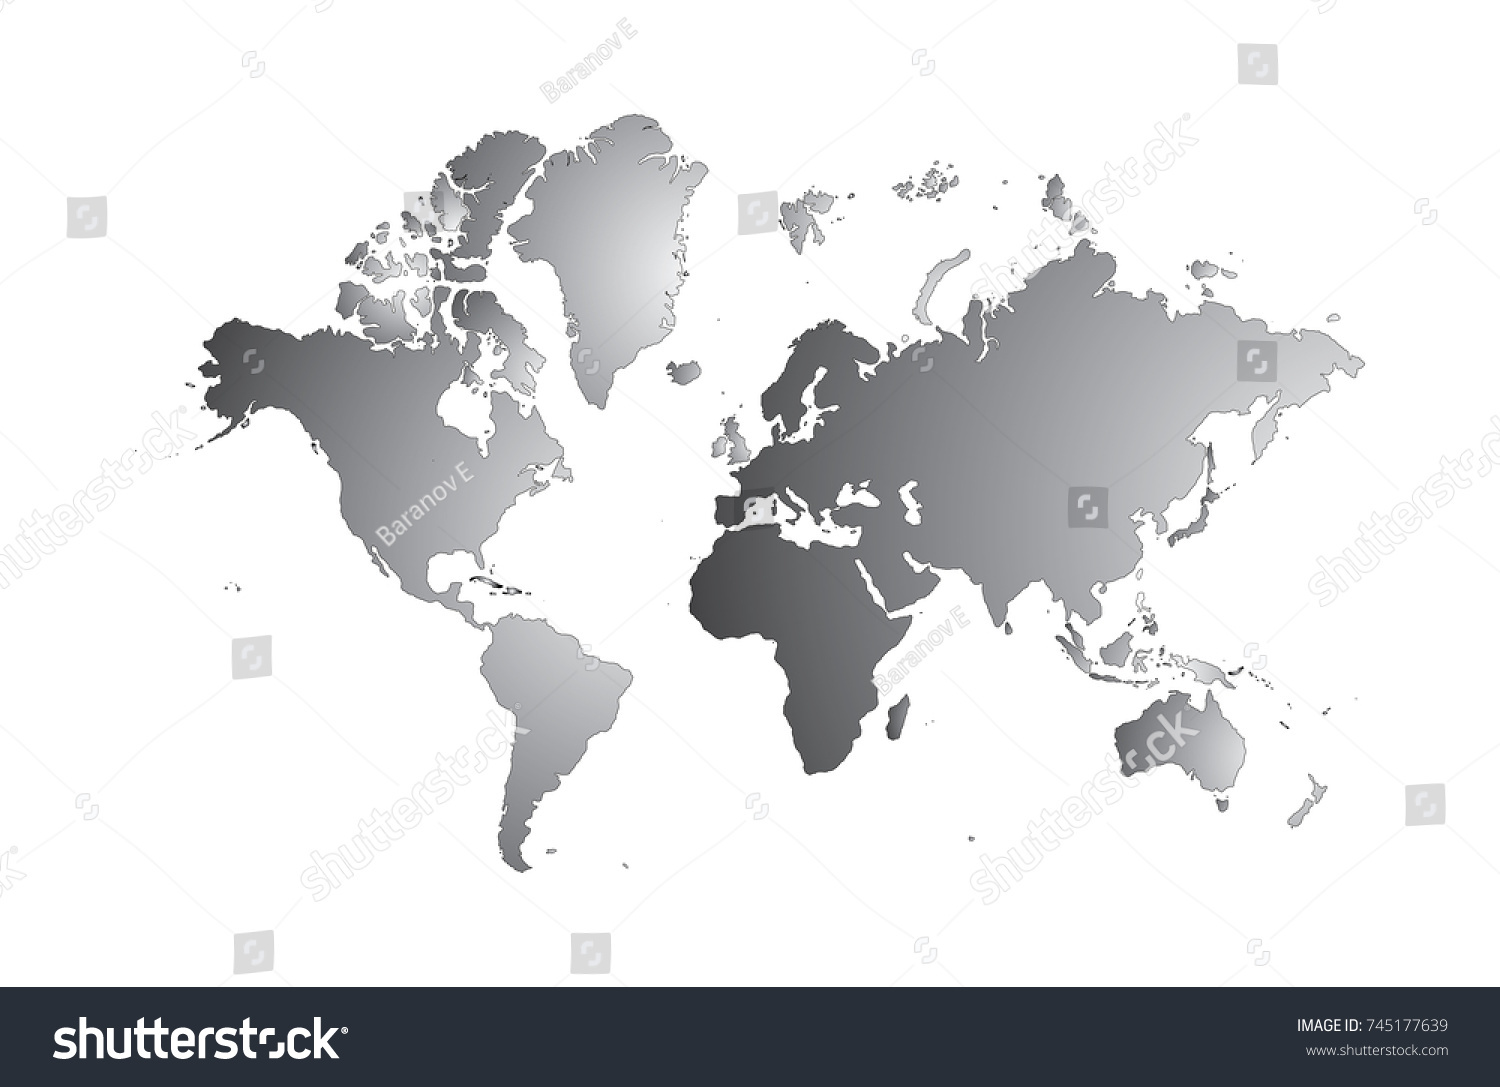 Blank grey world map isolated on stock vector 745177639 shutterstock blank grey world map isolated on white background popular world map vector globe template for gumiabroncs Images